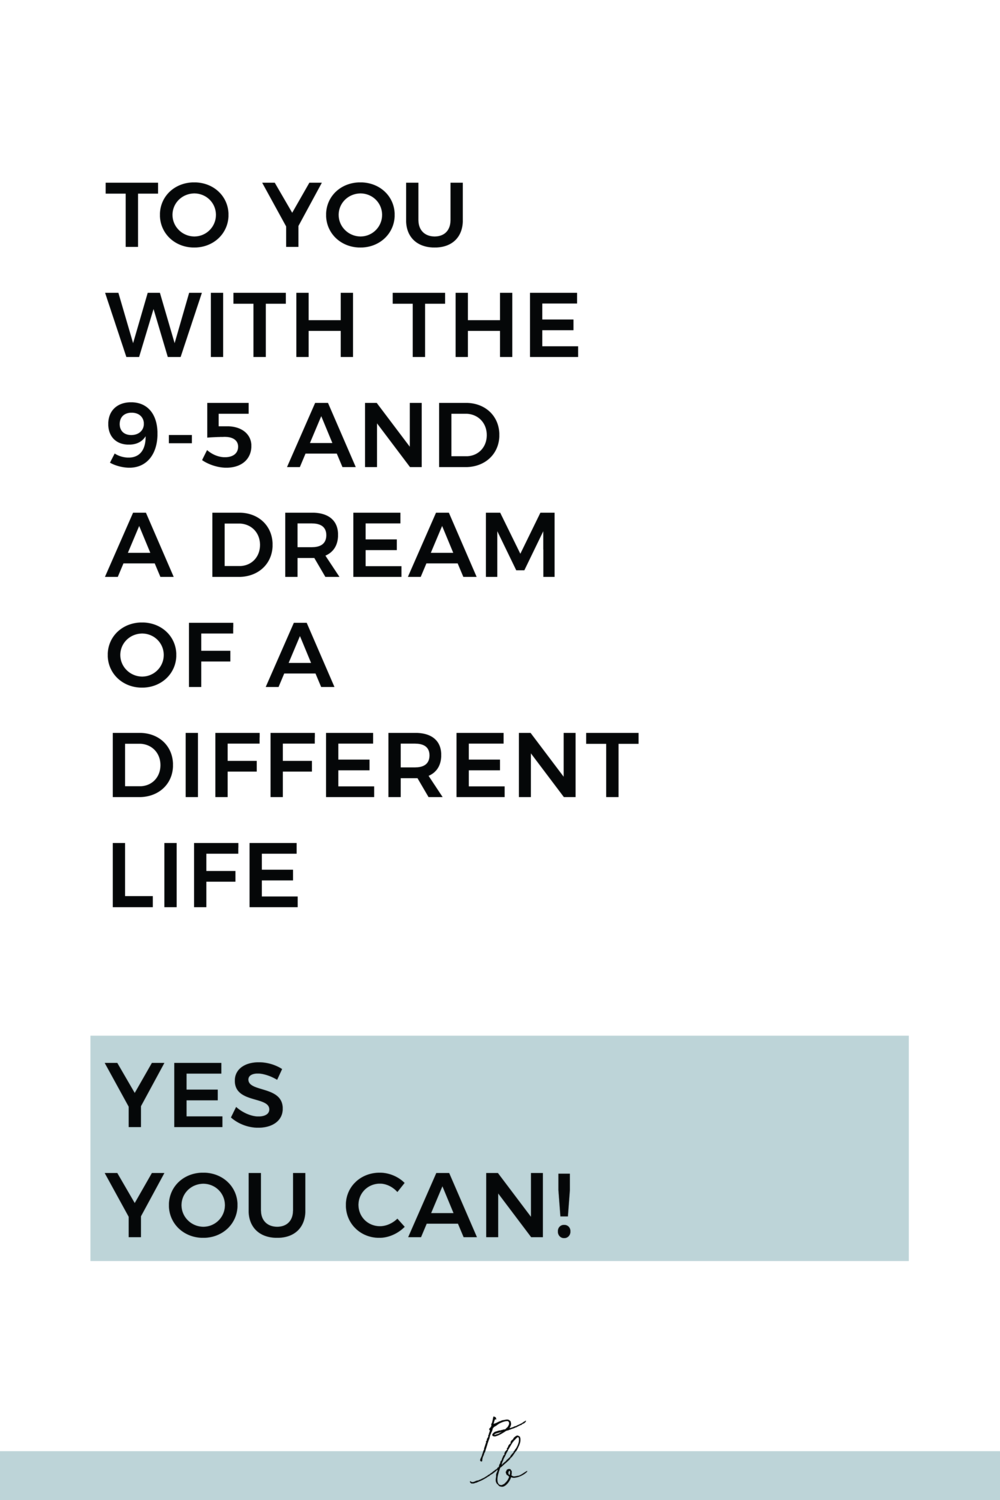 TO YOU WITH THE 9-5 AND A DREAM OF A DIFFERENT LIFE - YES YOU CAN MOTIVATION.png